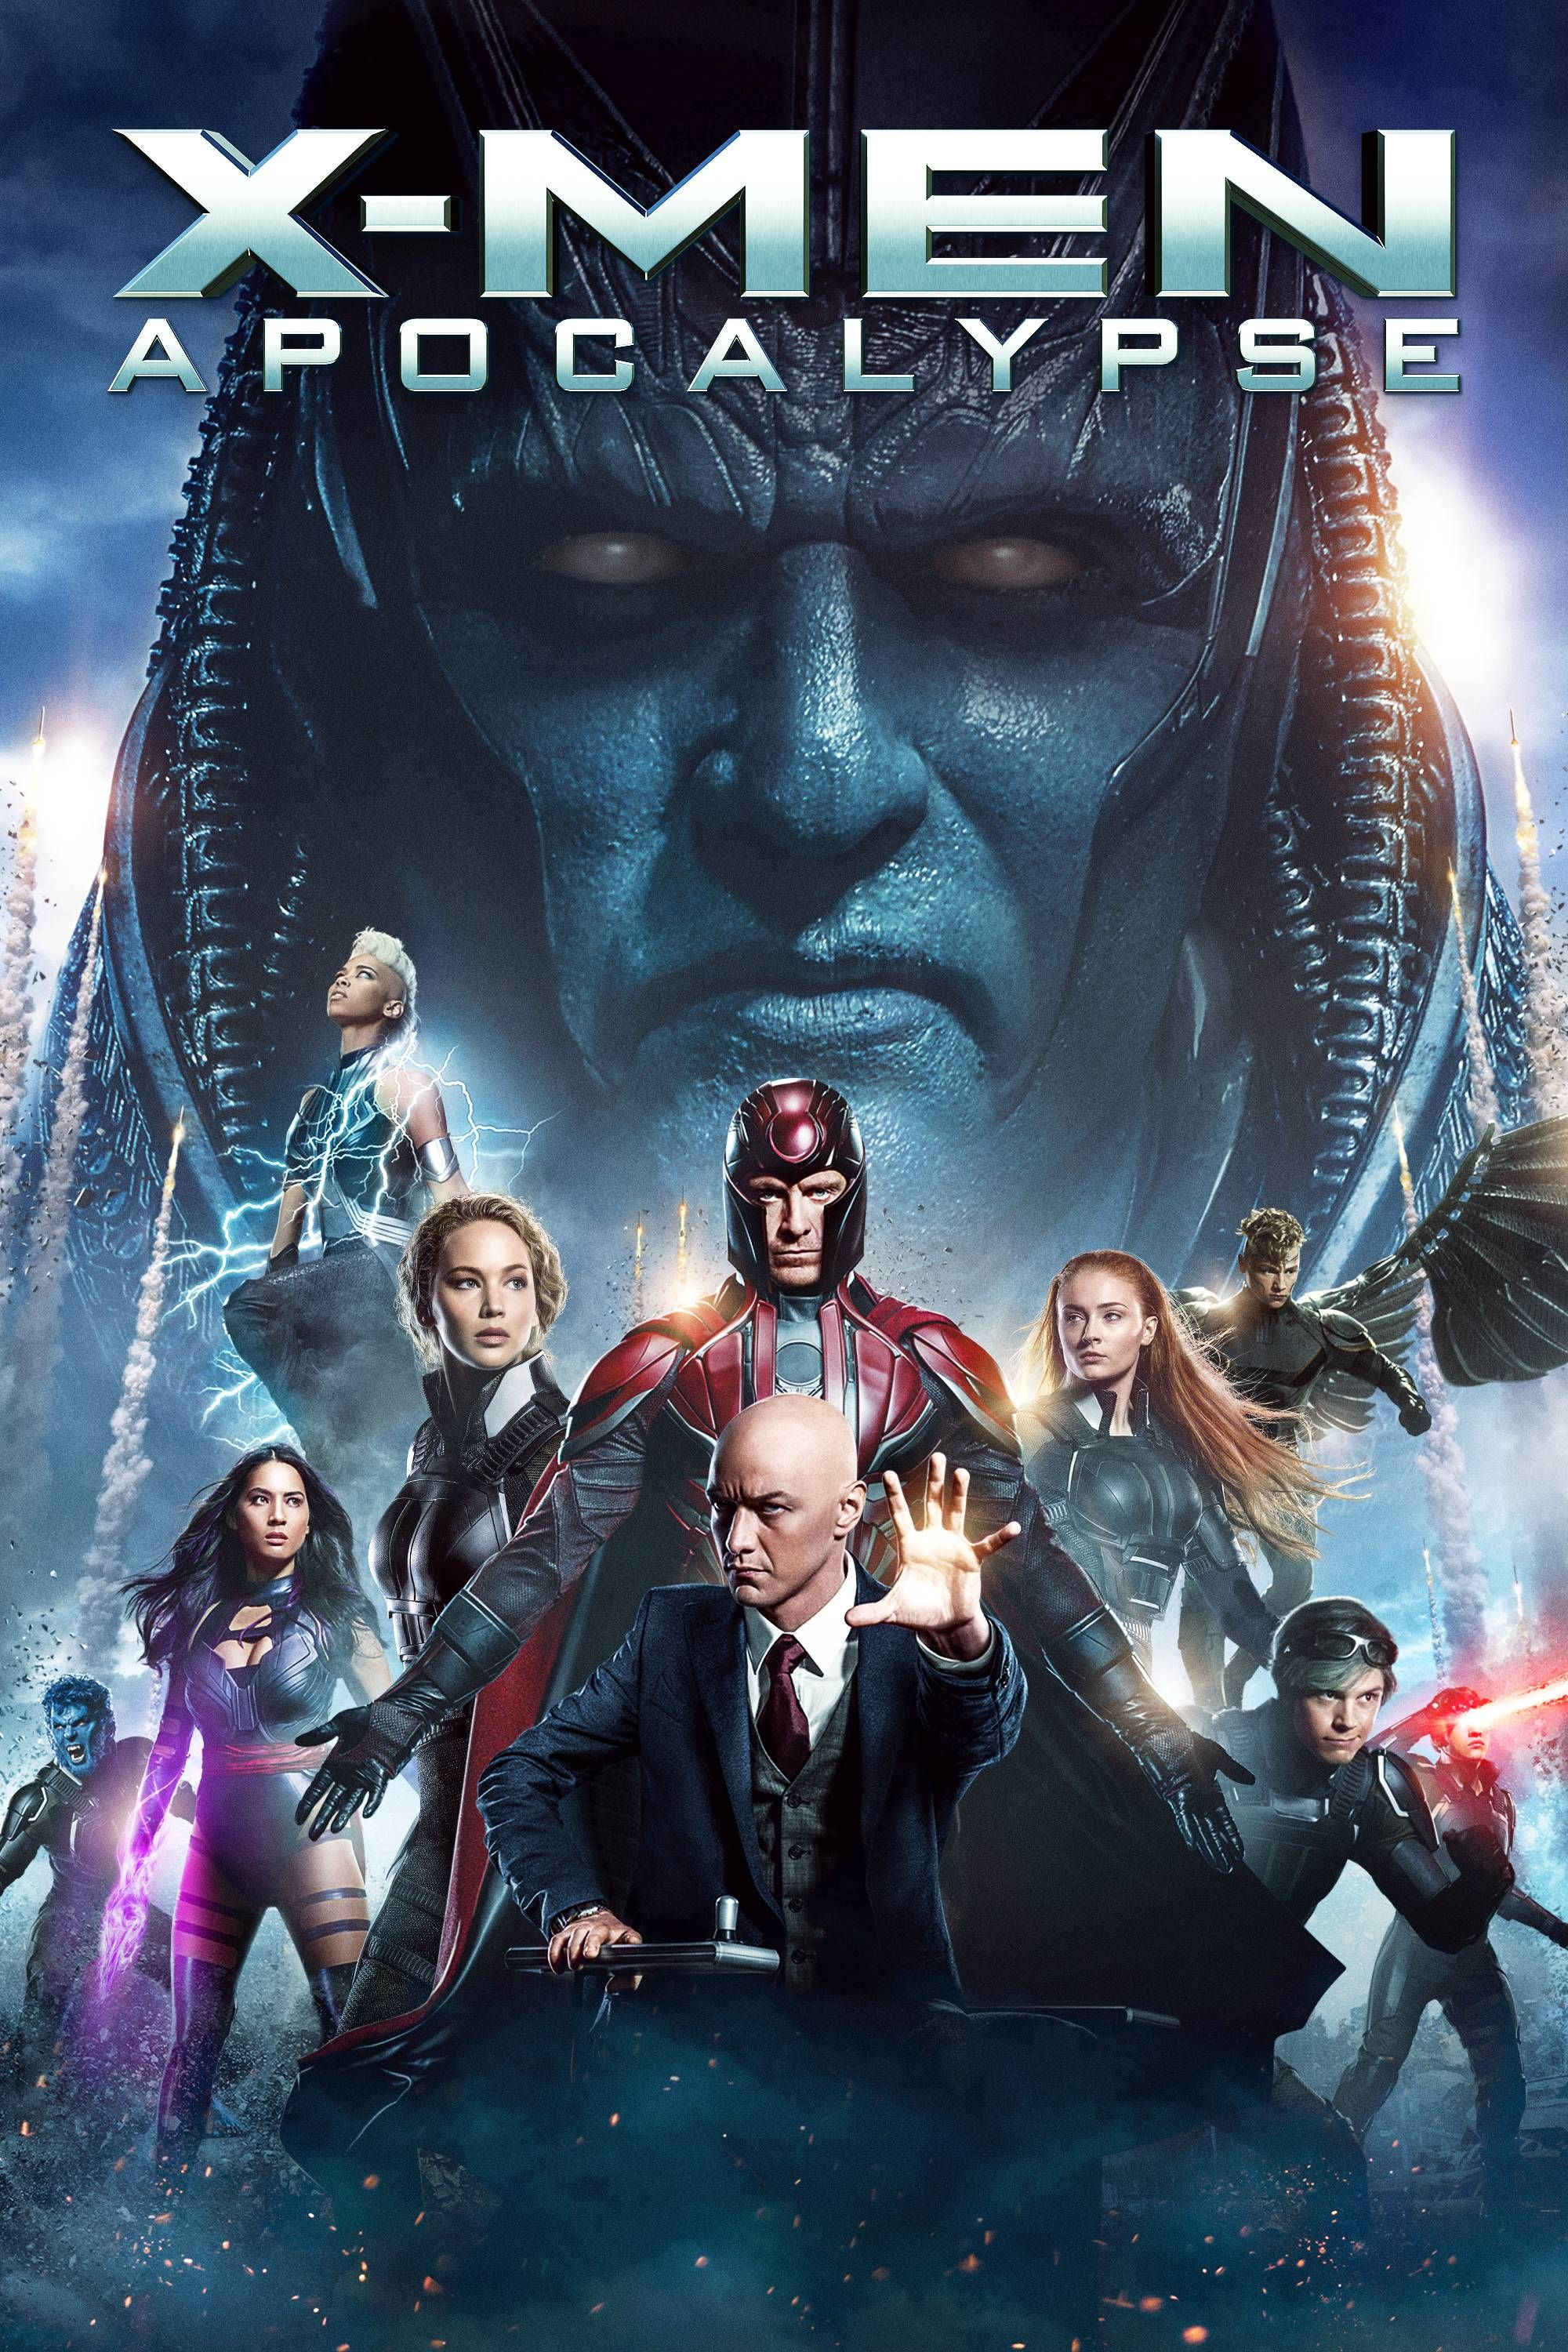 X-Men: Apocalypse Movie Poster - James McAvoy, Michael Fassbender, Jennifer Lawrence  #Men, #Apocalypse, #JamesMcAvoy, #MichaelFassbender, #JenniferLawrence, #BryanSinger, #ActionAdventure, #Art, #Film, #Movie, #Poster